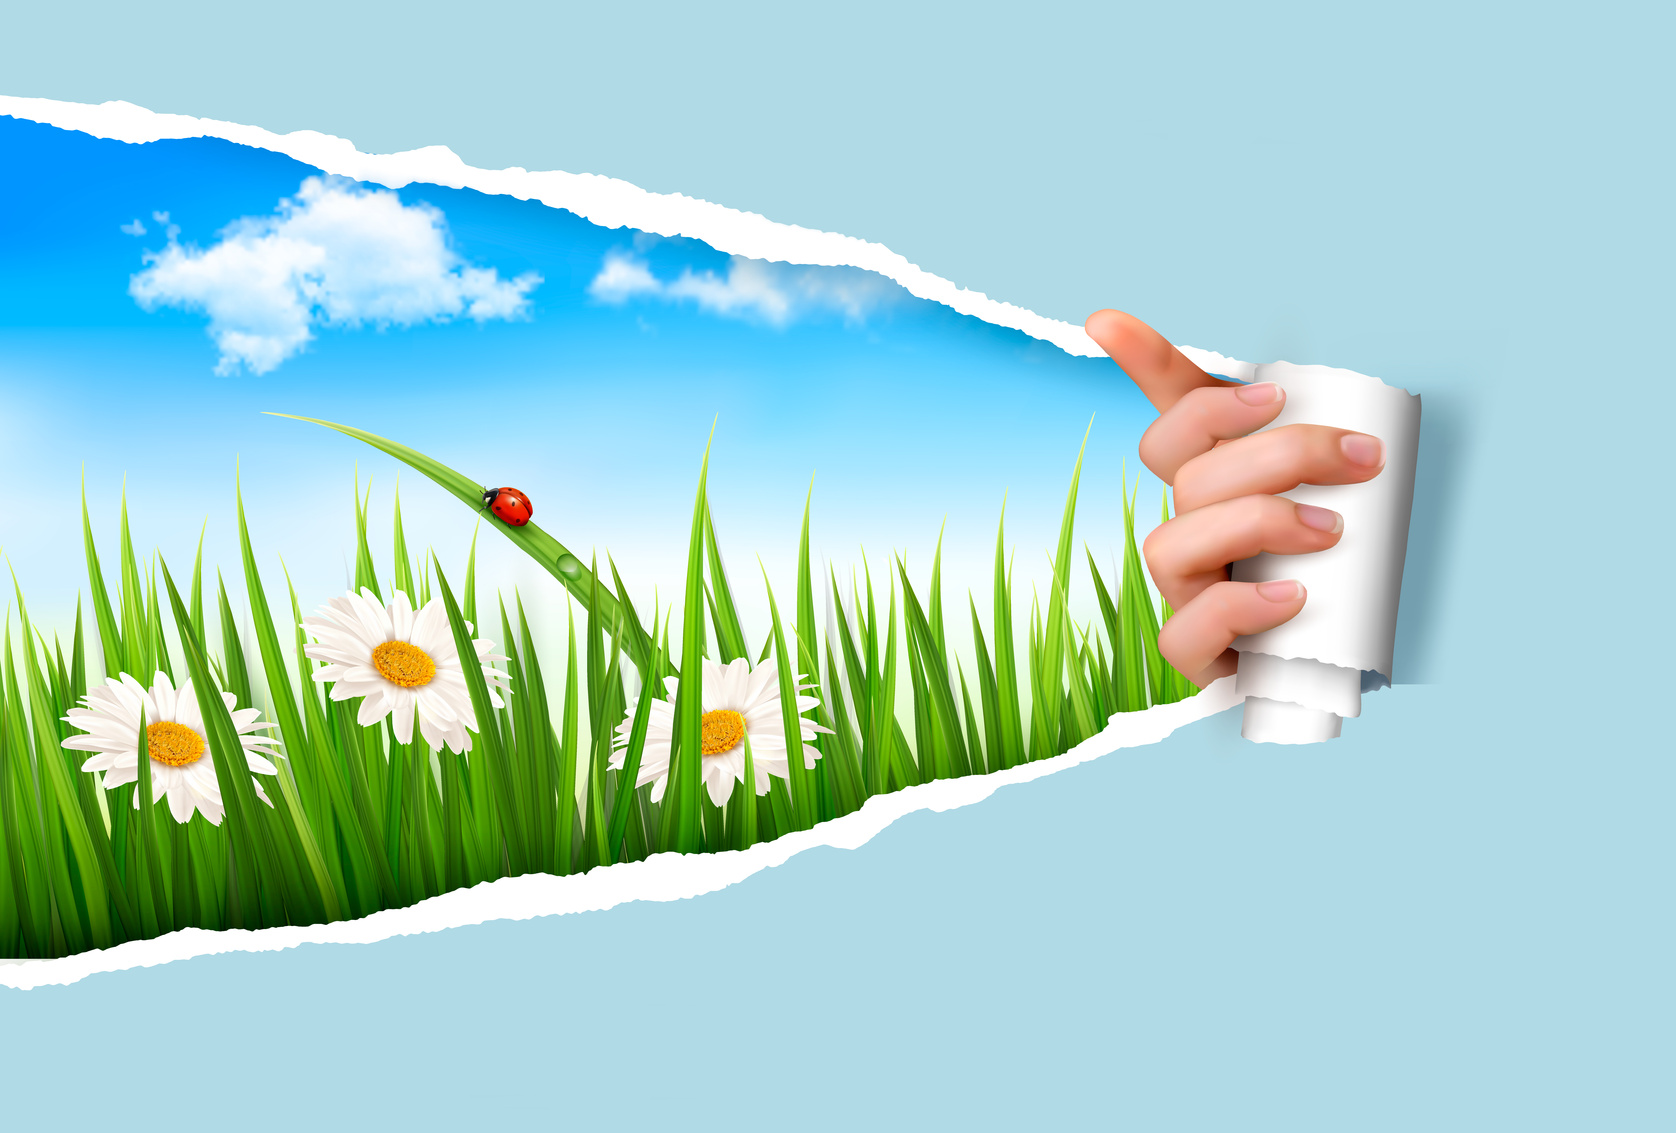 Spring Background With Flowers Grass And A Ladybug Vector